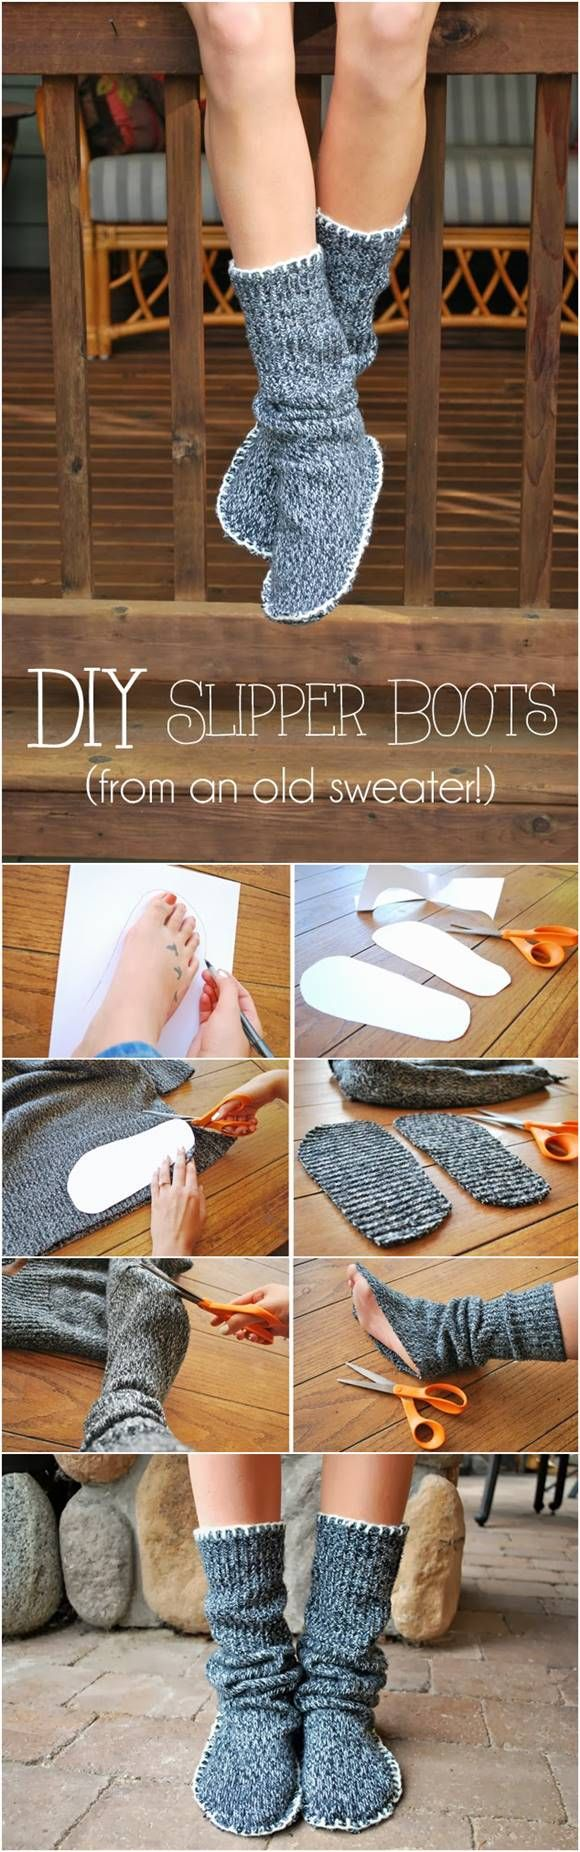 How to sew slippers from old slippers and towels 25